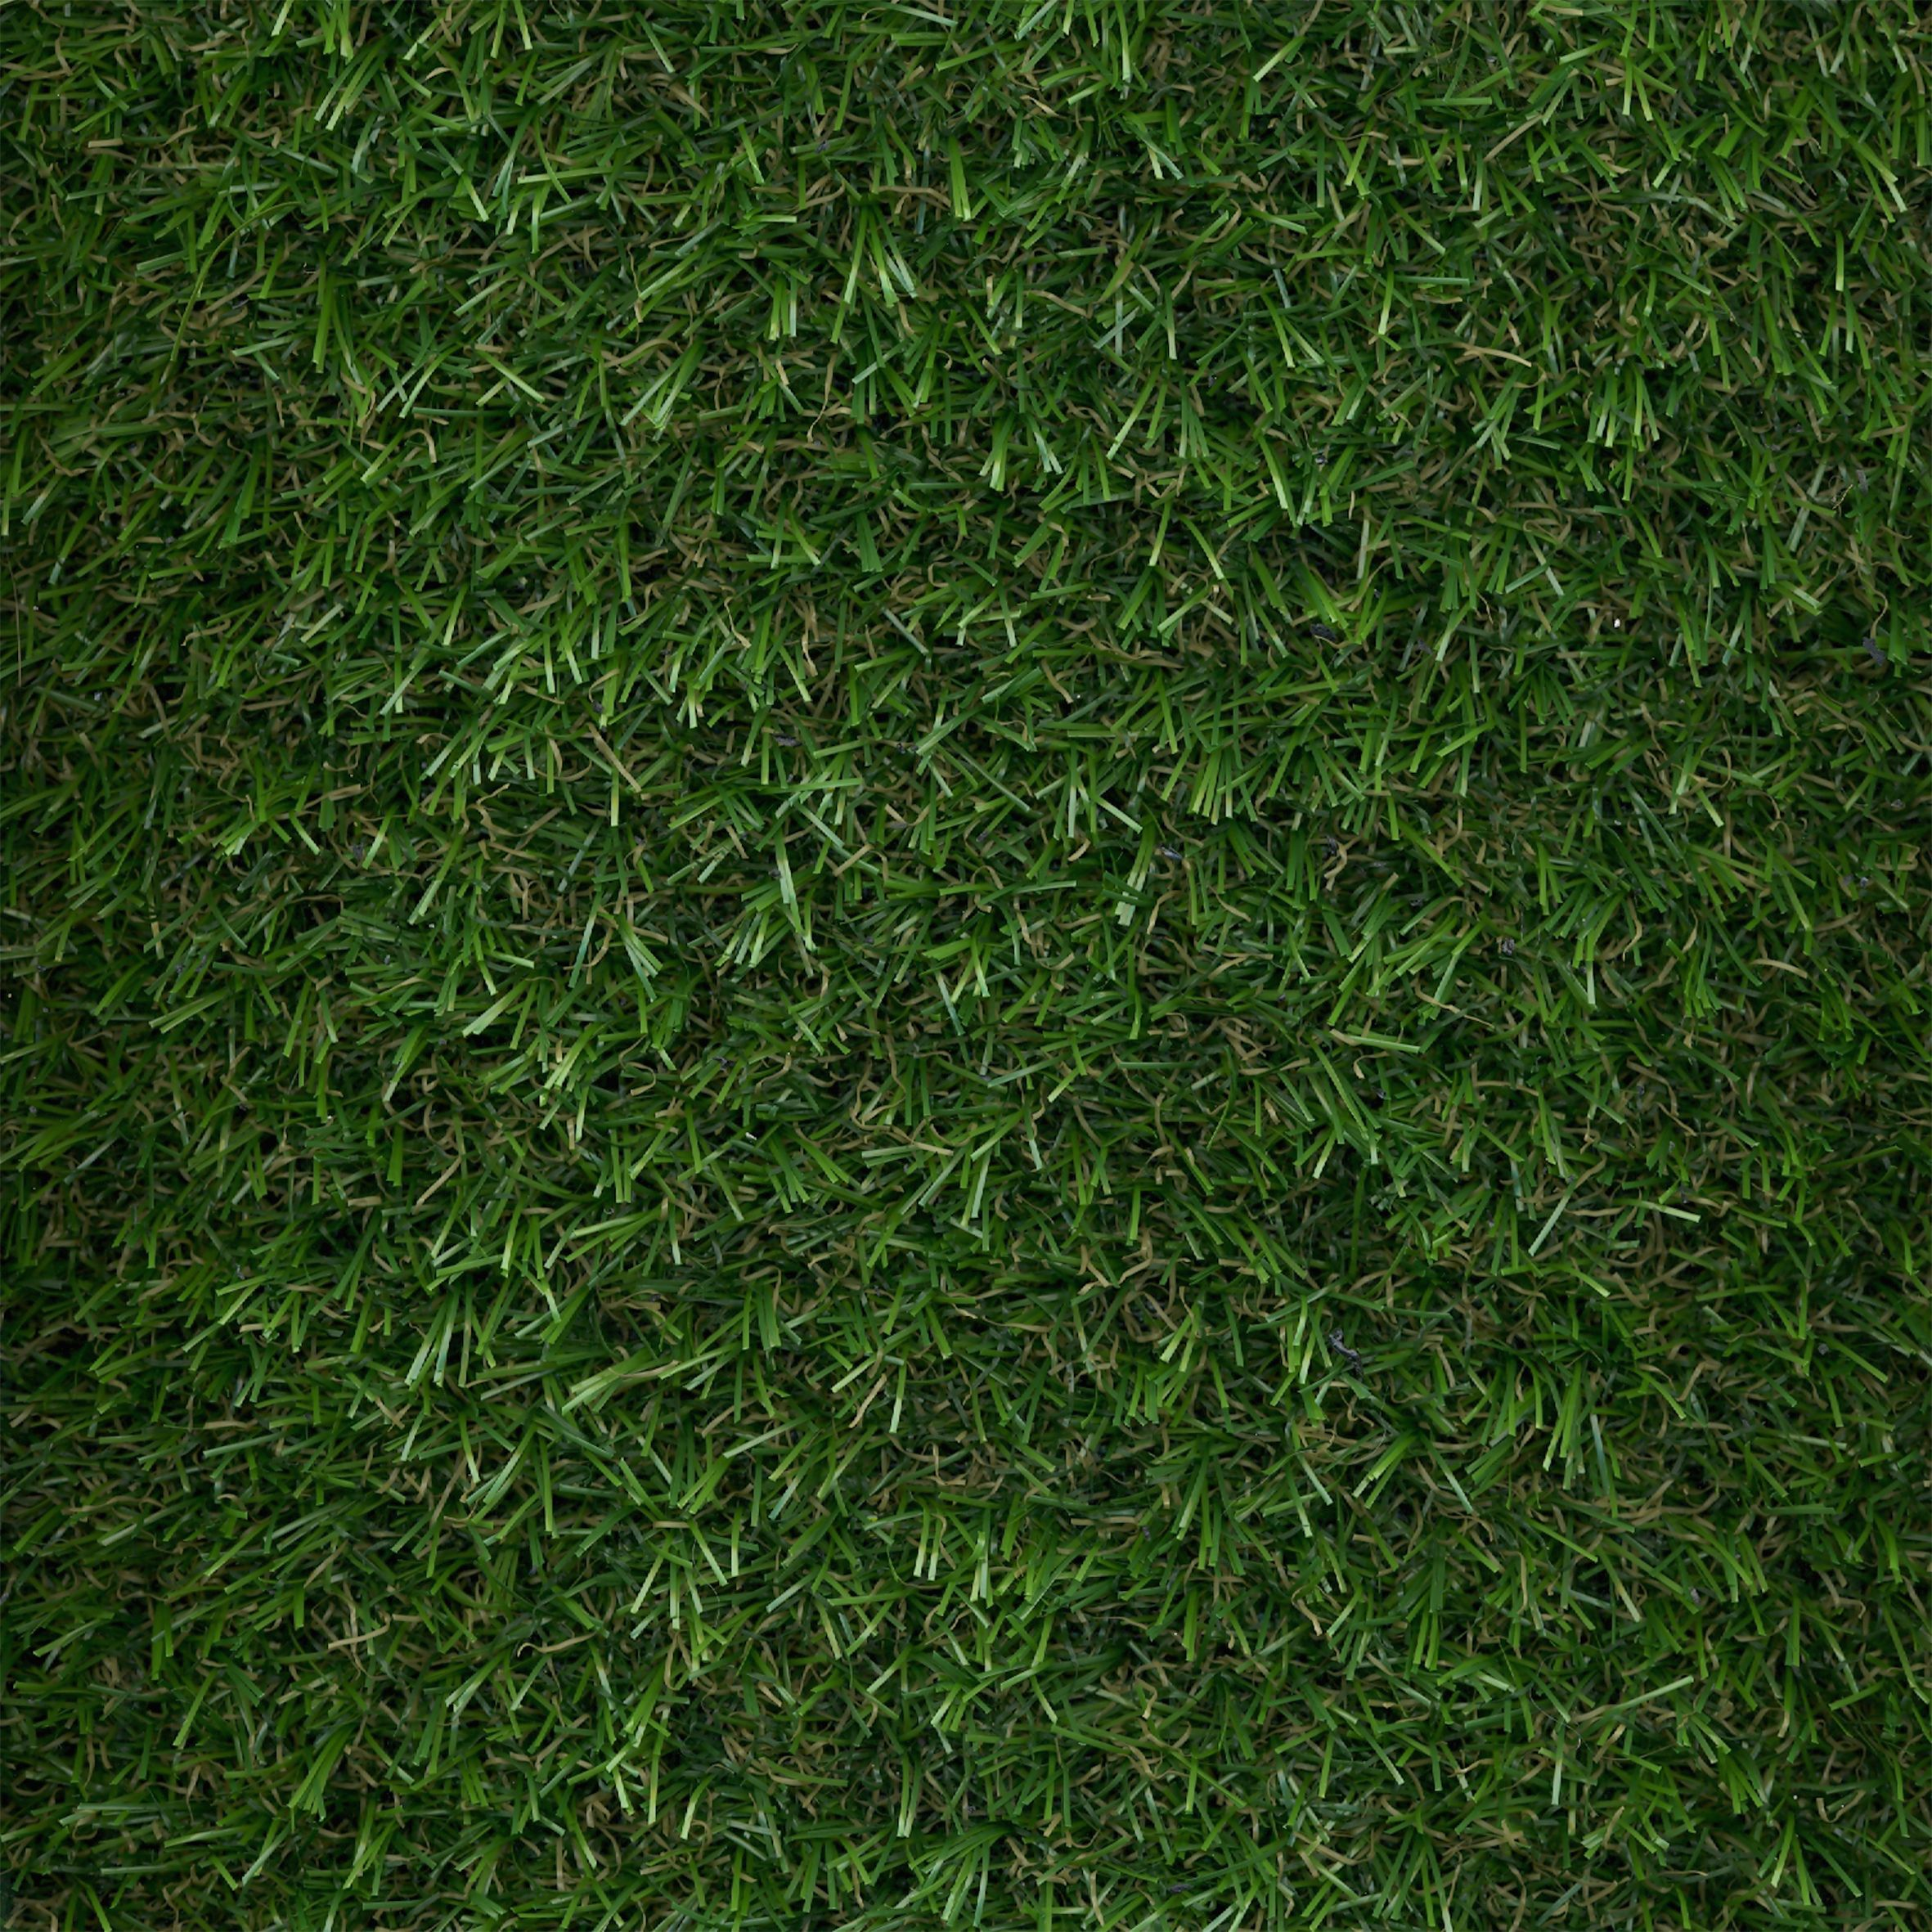 Eton Medium Density Artificial Grass W 4 M X L 1m X T